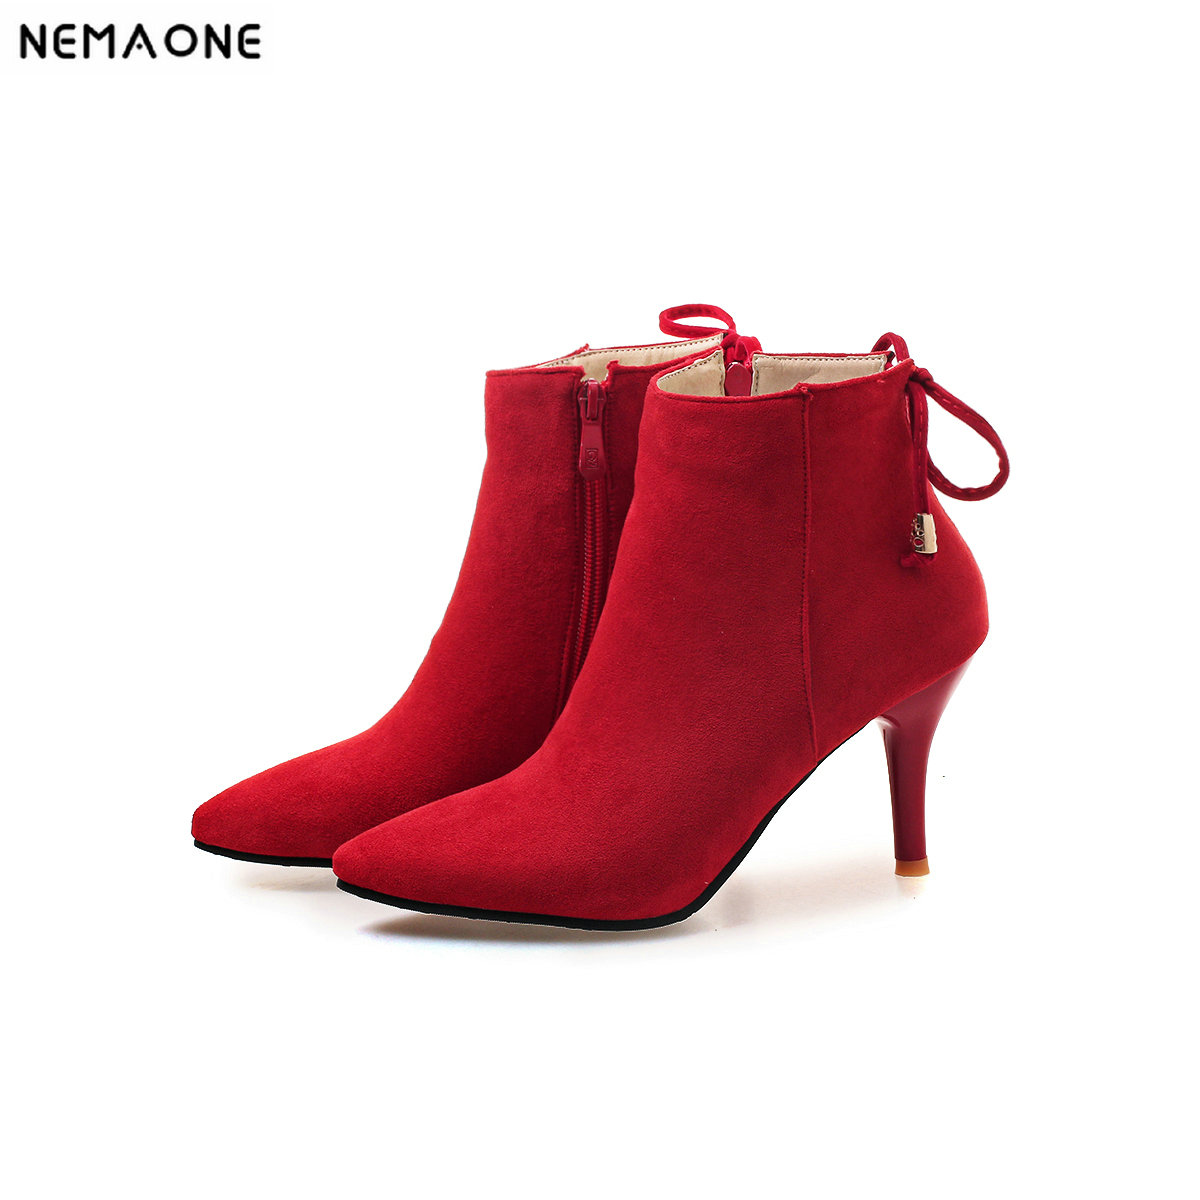 NEMAONE ladies high heels ankle boots sweet wedding party shoes woman black red green women boots large size 42 43 nemaone 8cm high heel knee high women boots ladies shoes party dress wedding shoes woman large size 43 black red blue